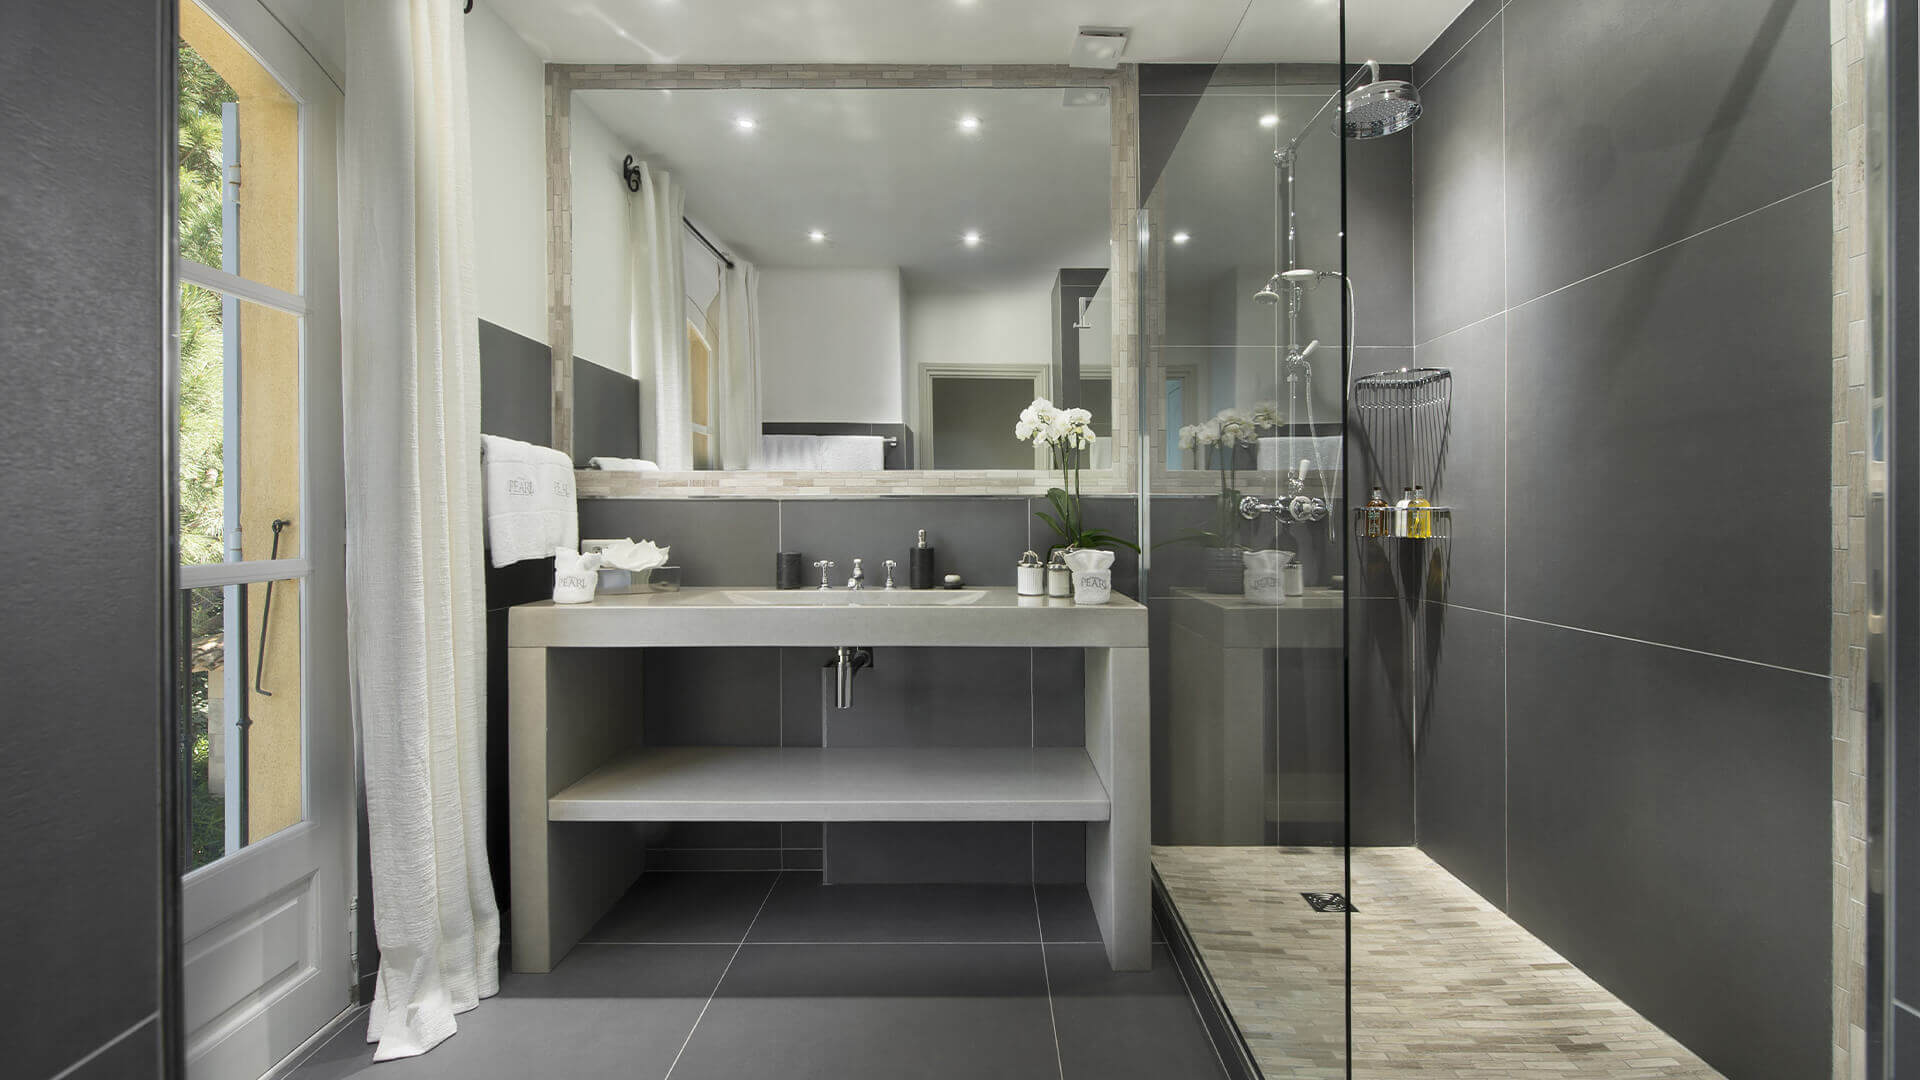 Saint Tropez Villa dark bathroom with large tiles and shower niche